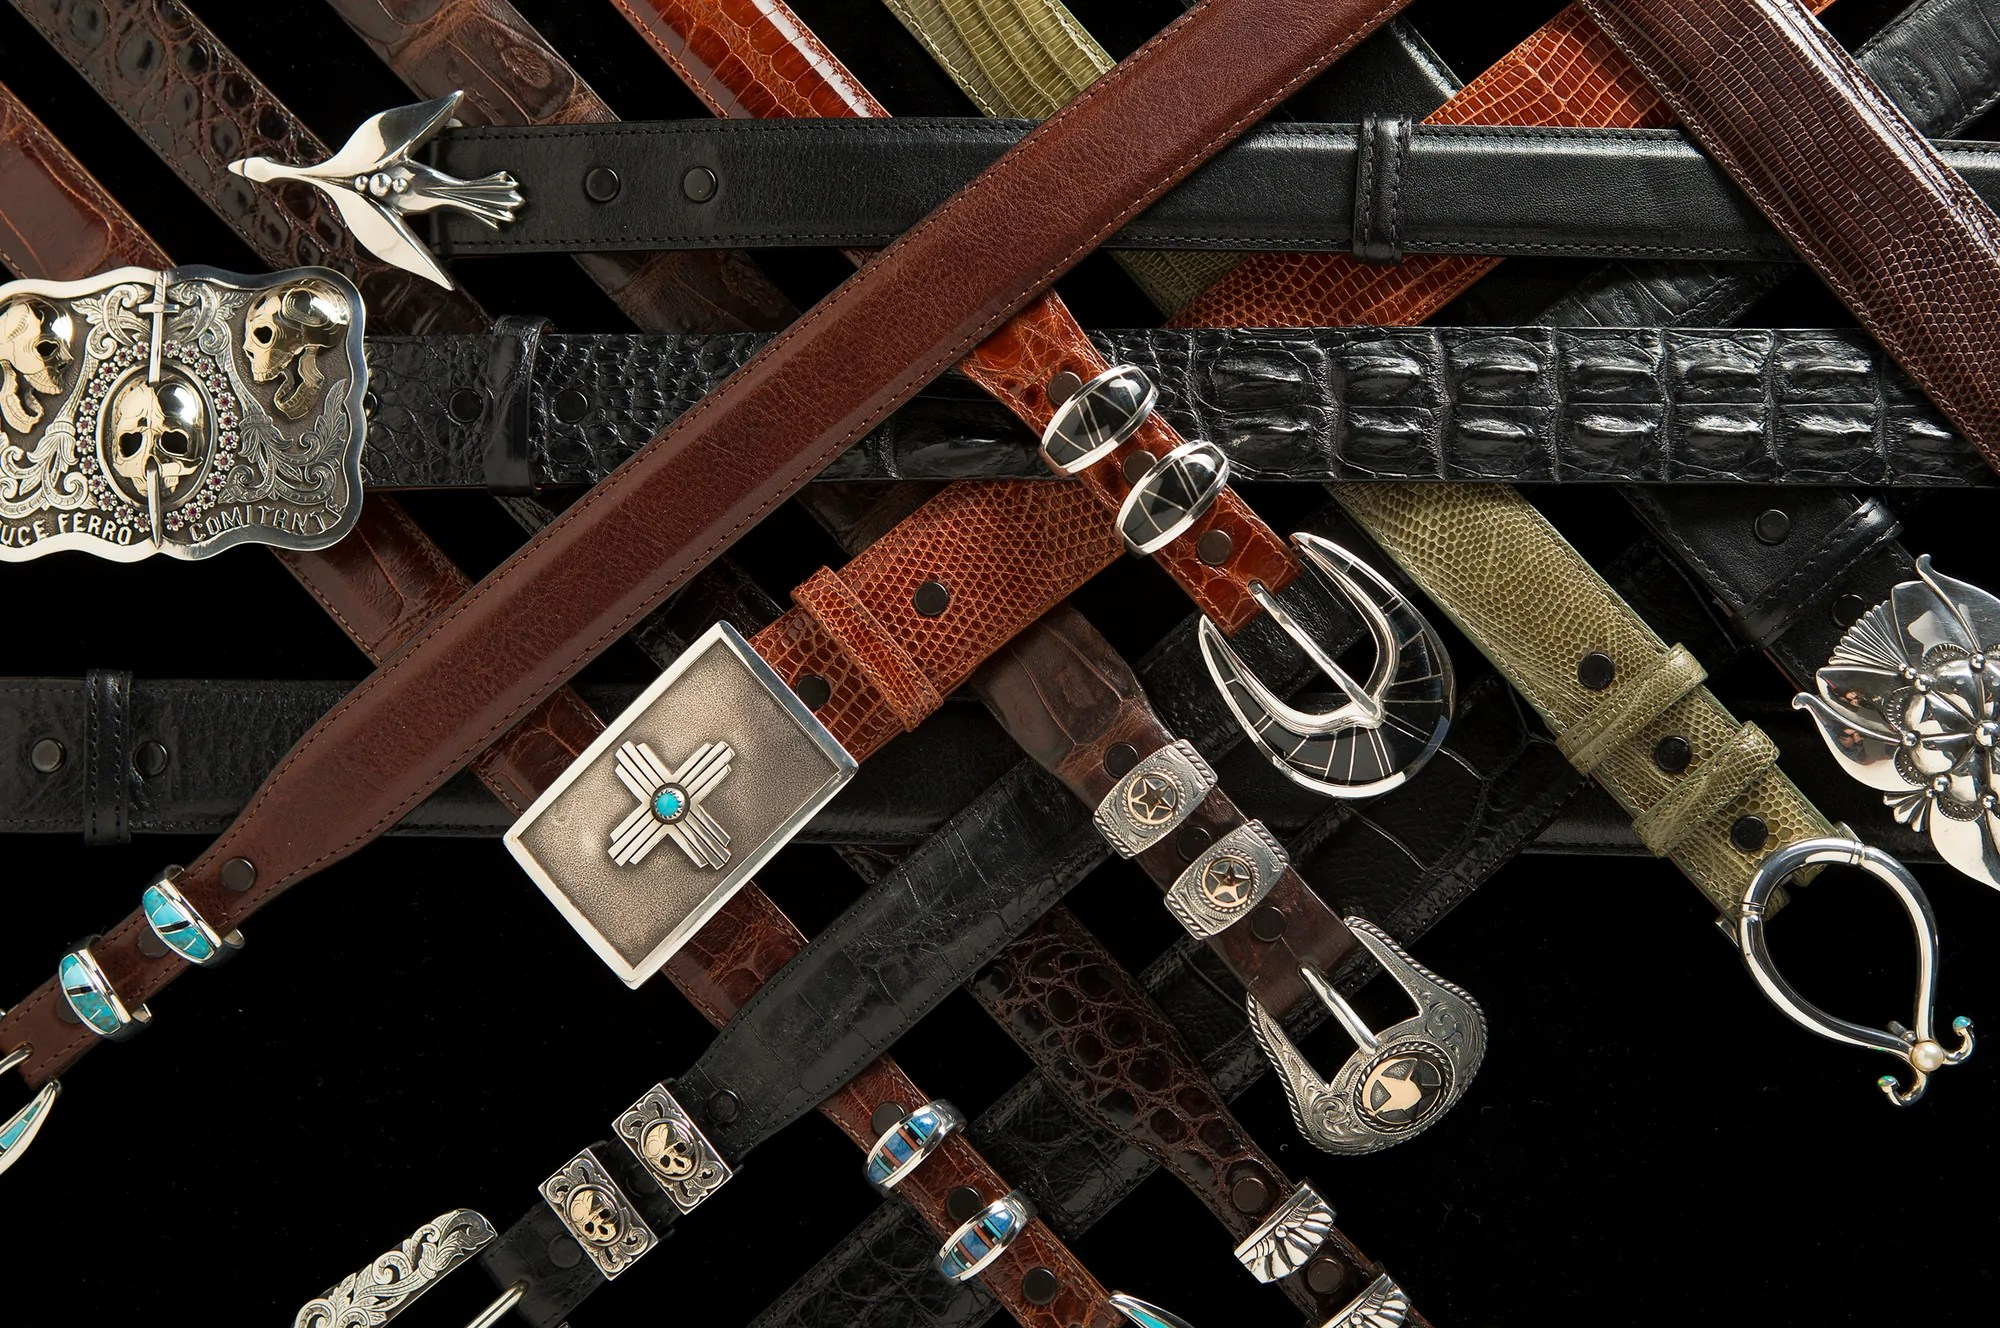 Buckle Tip Sets Tom Taylor Belts Buckles Bags Tom Taylor Custom Leather Belts Buckles And Handbags